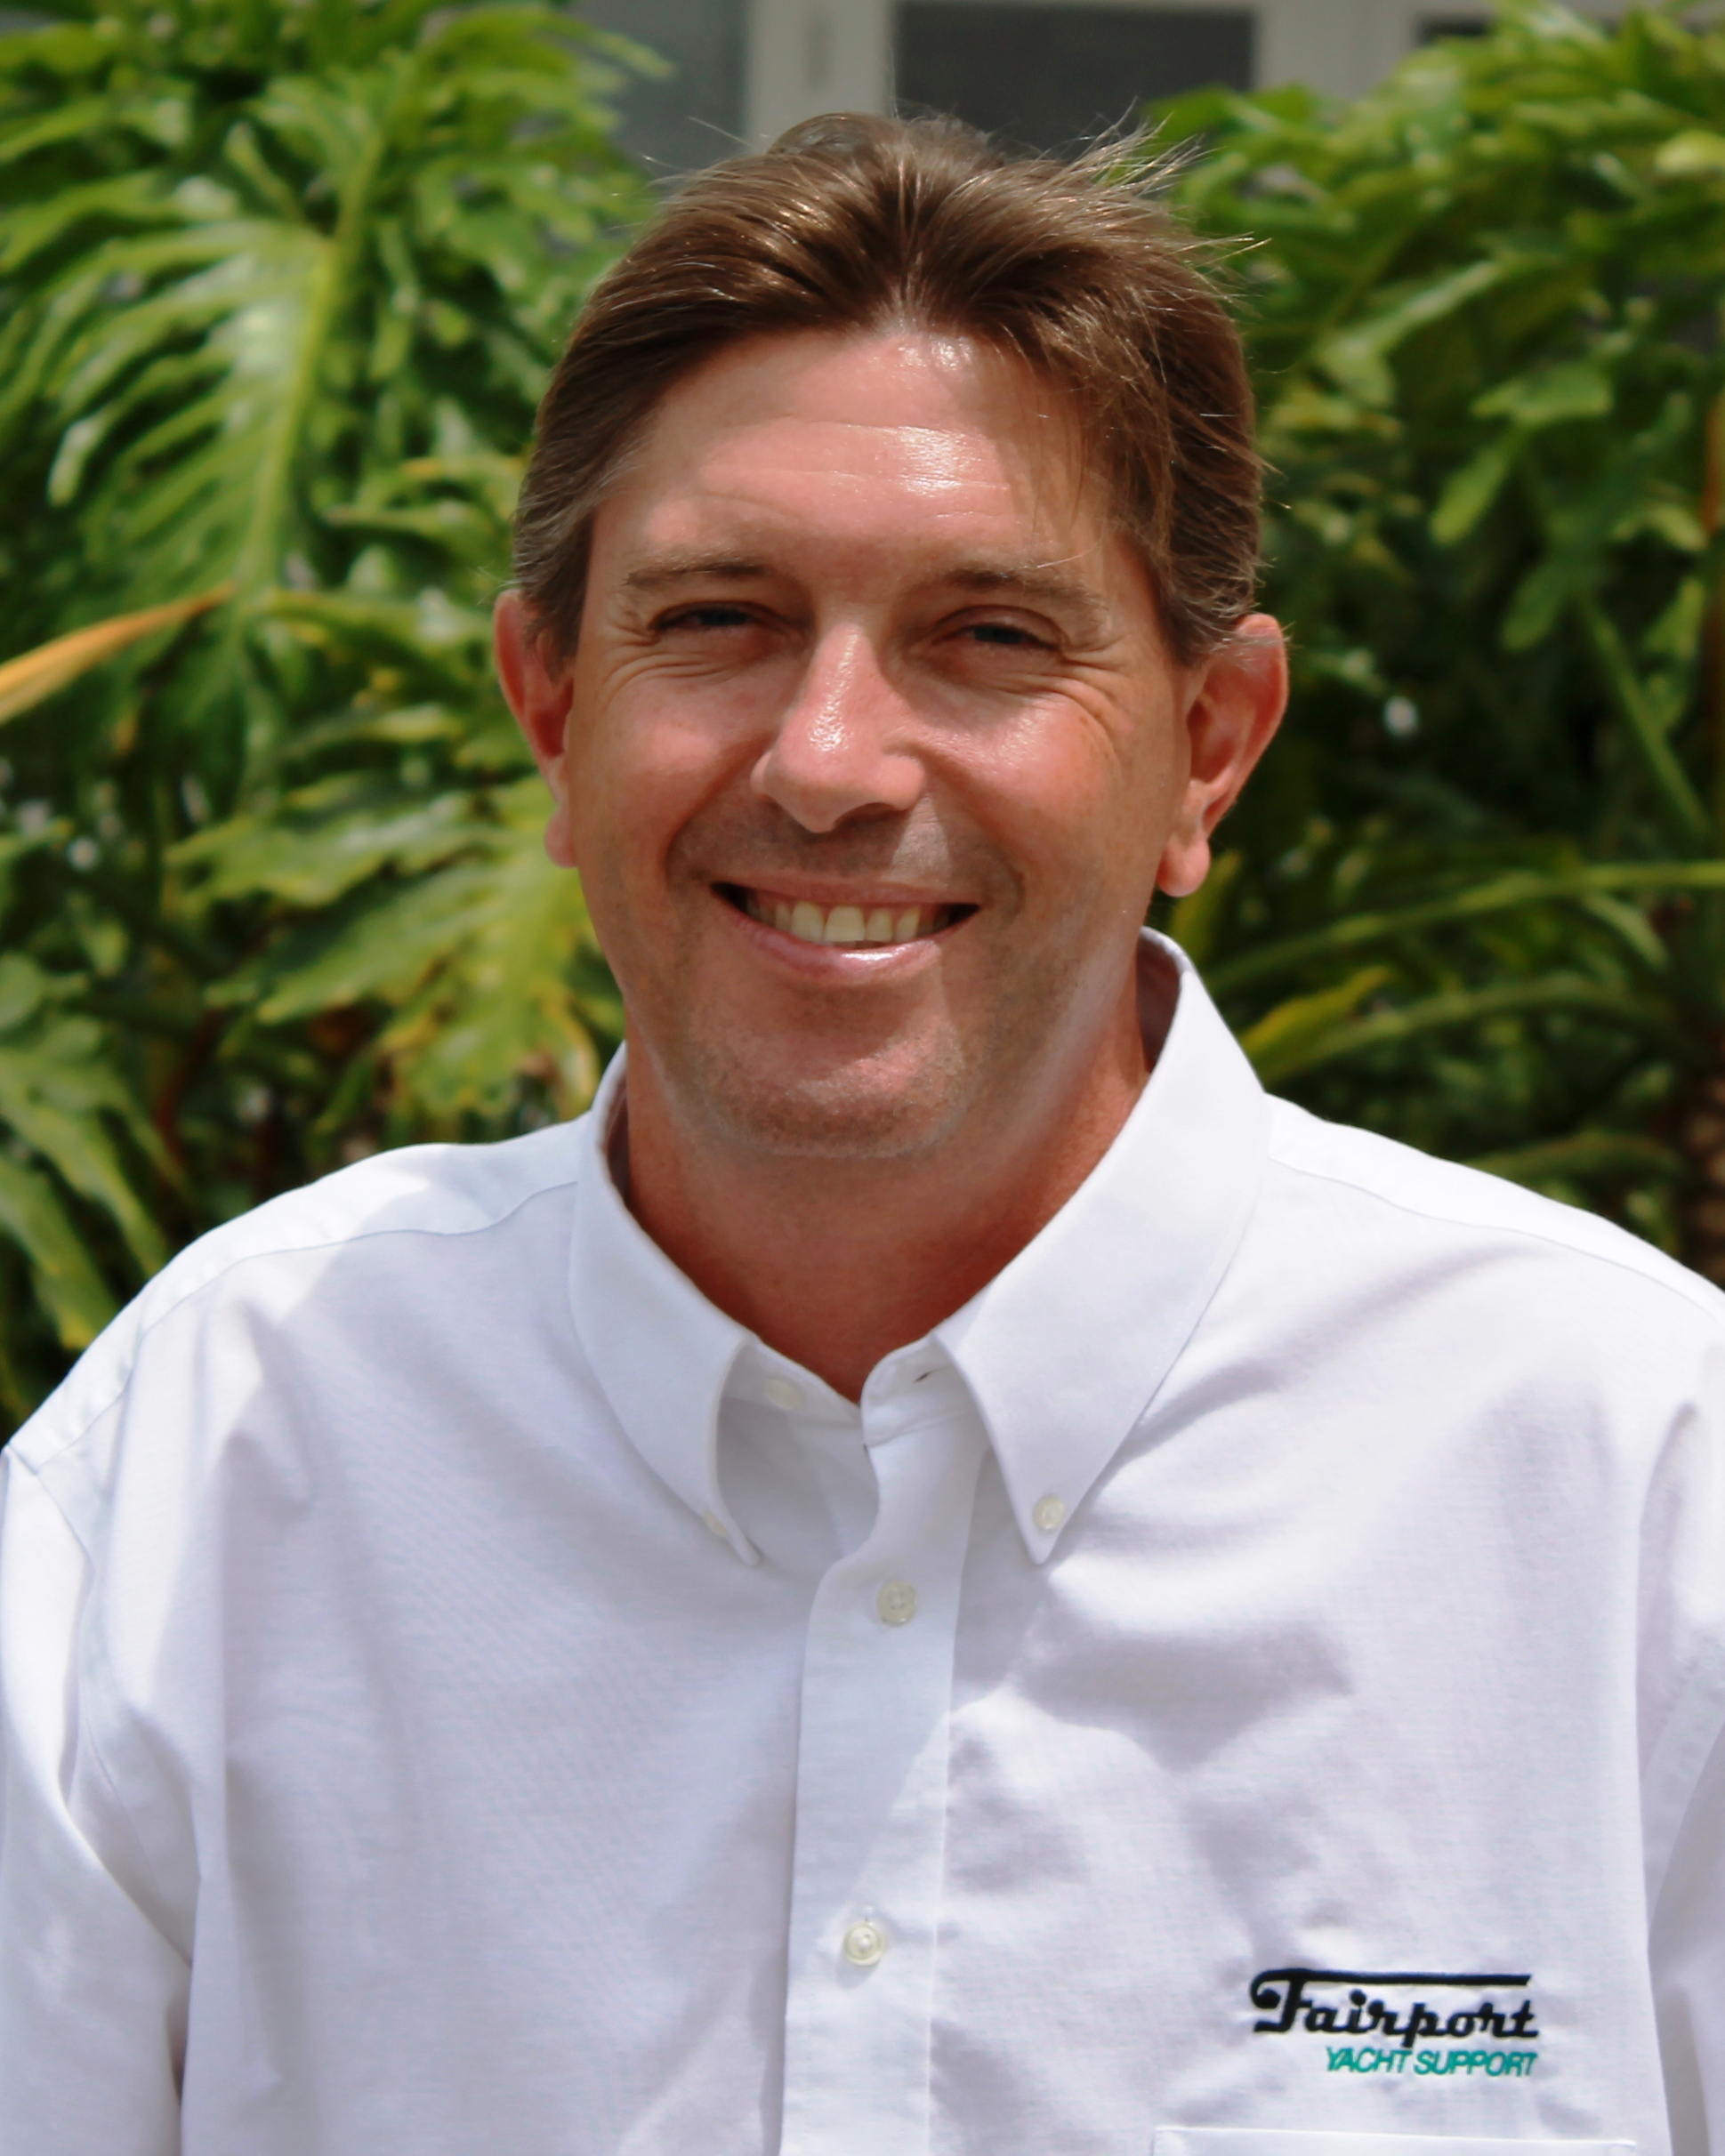 Yachting Industry Veteran Graeme Lord Starts Shore Support Company March